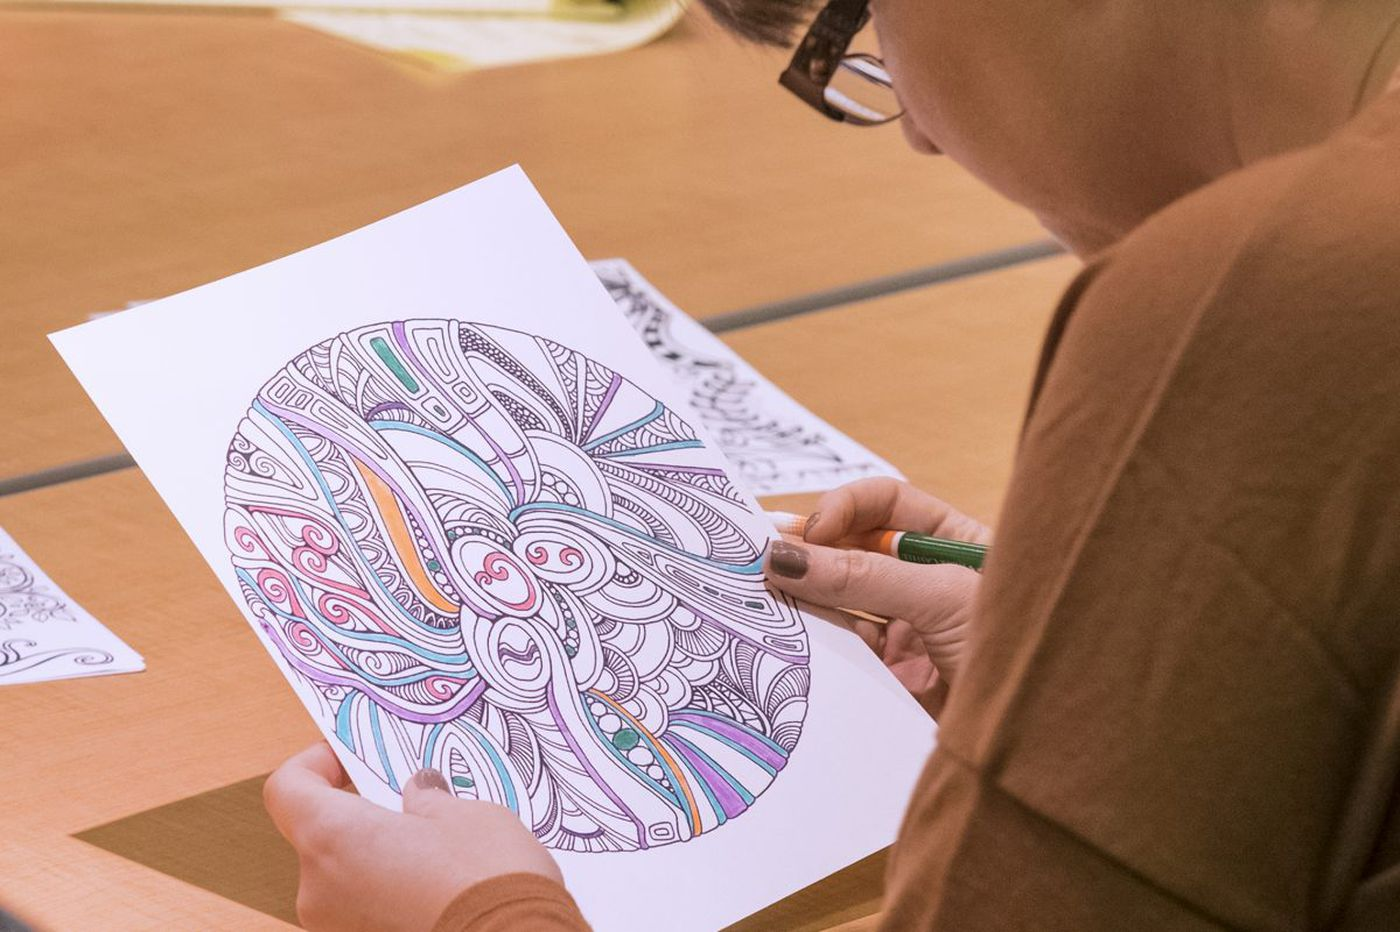 What can adult coloring books do for your health?